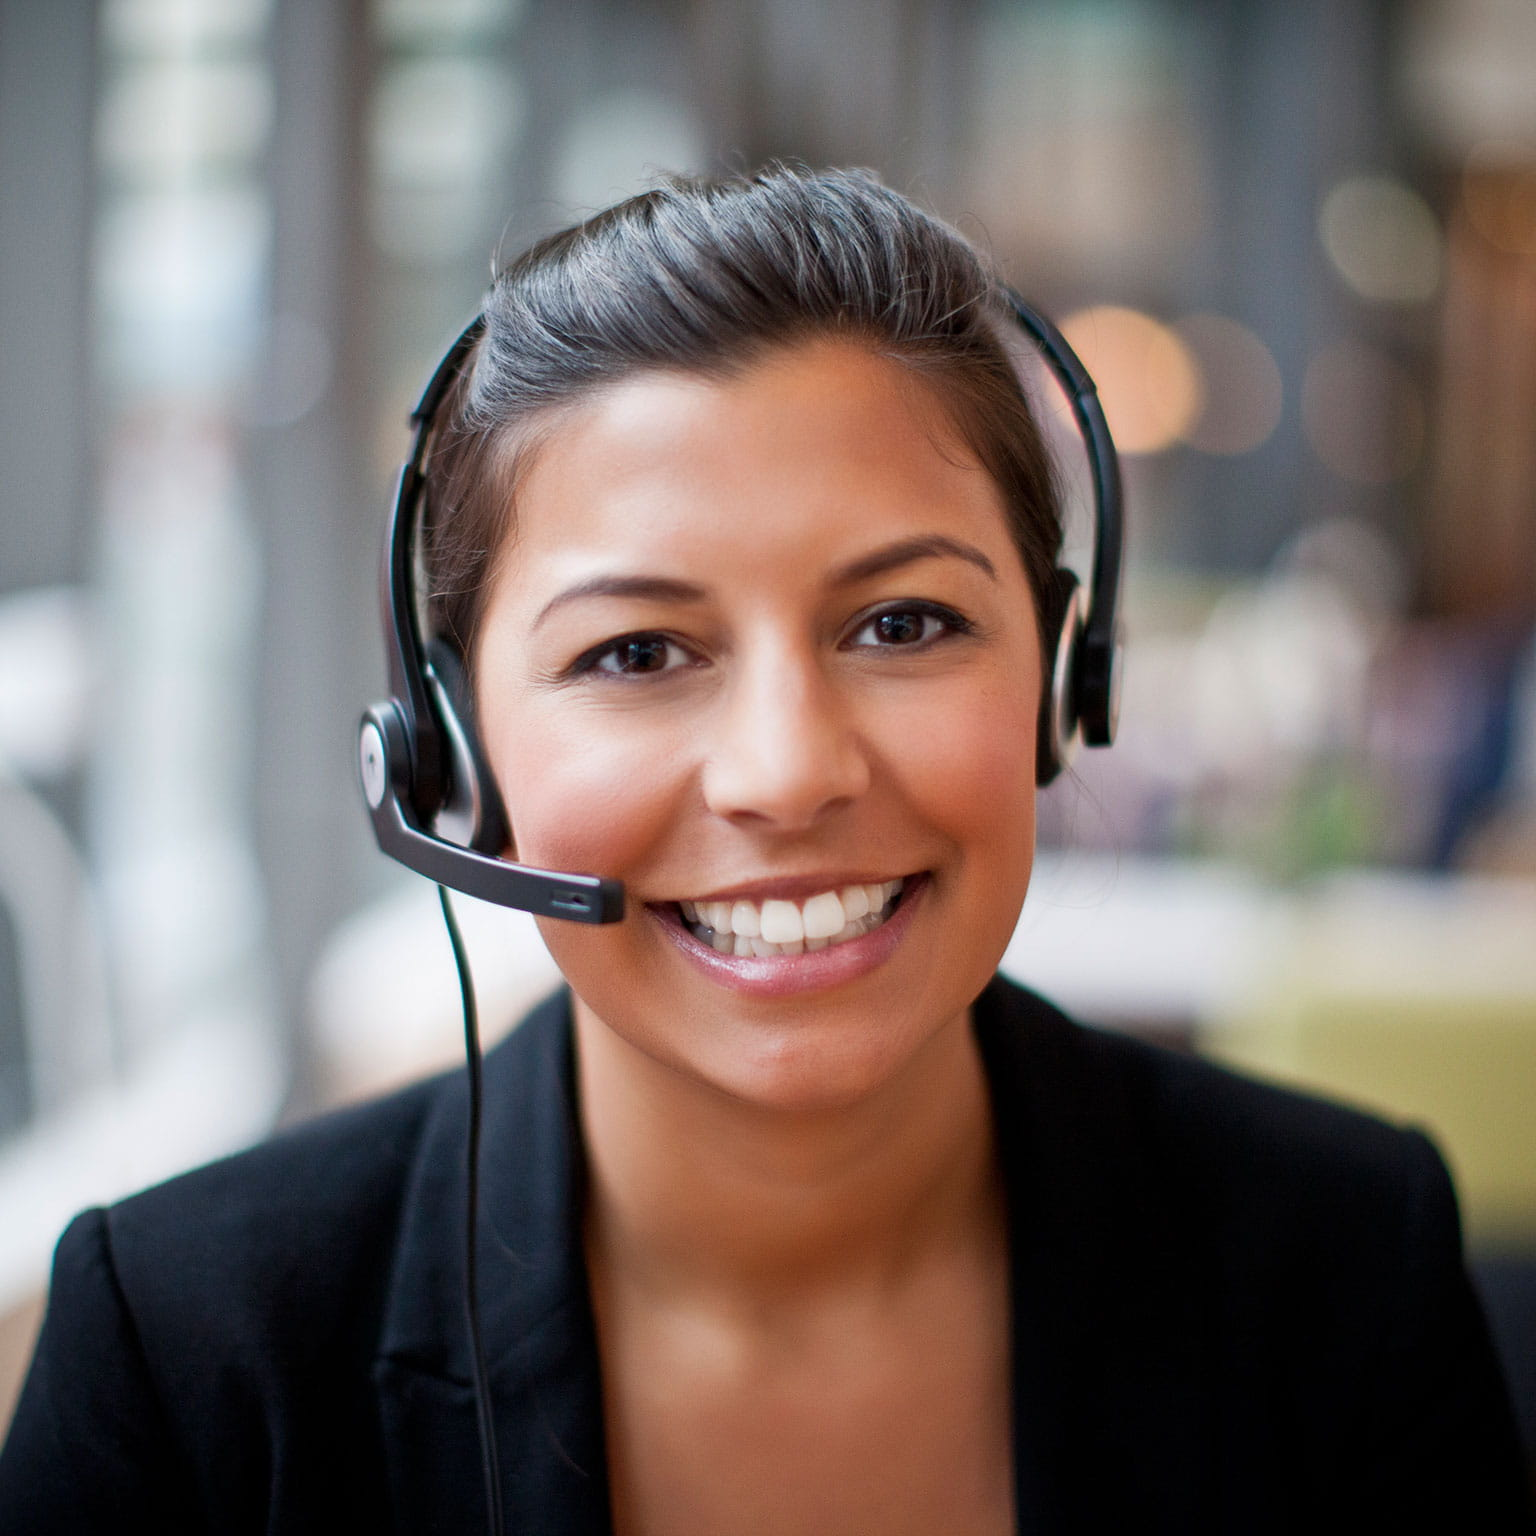 Woman-on-headset